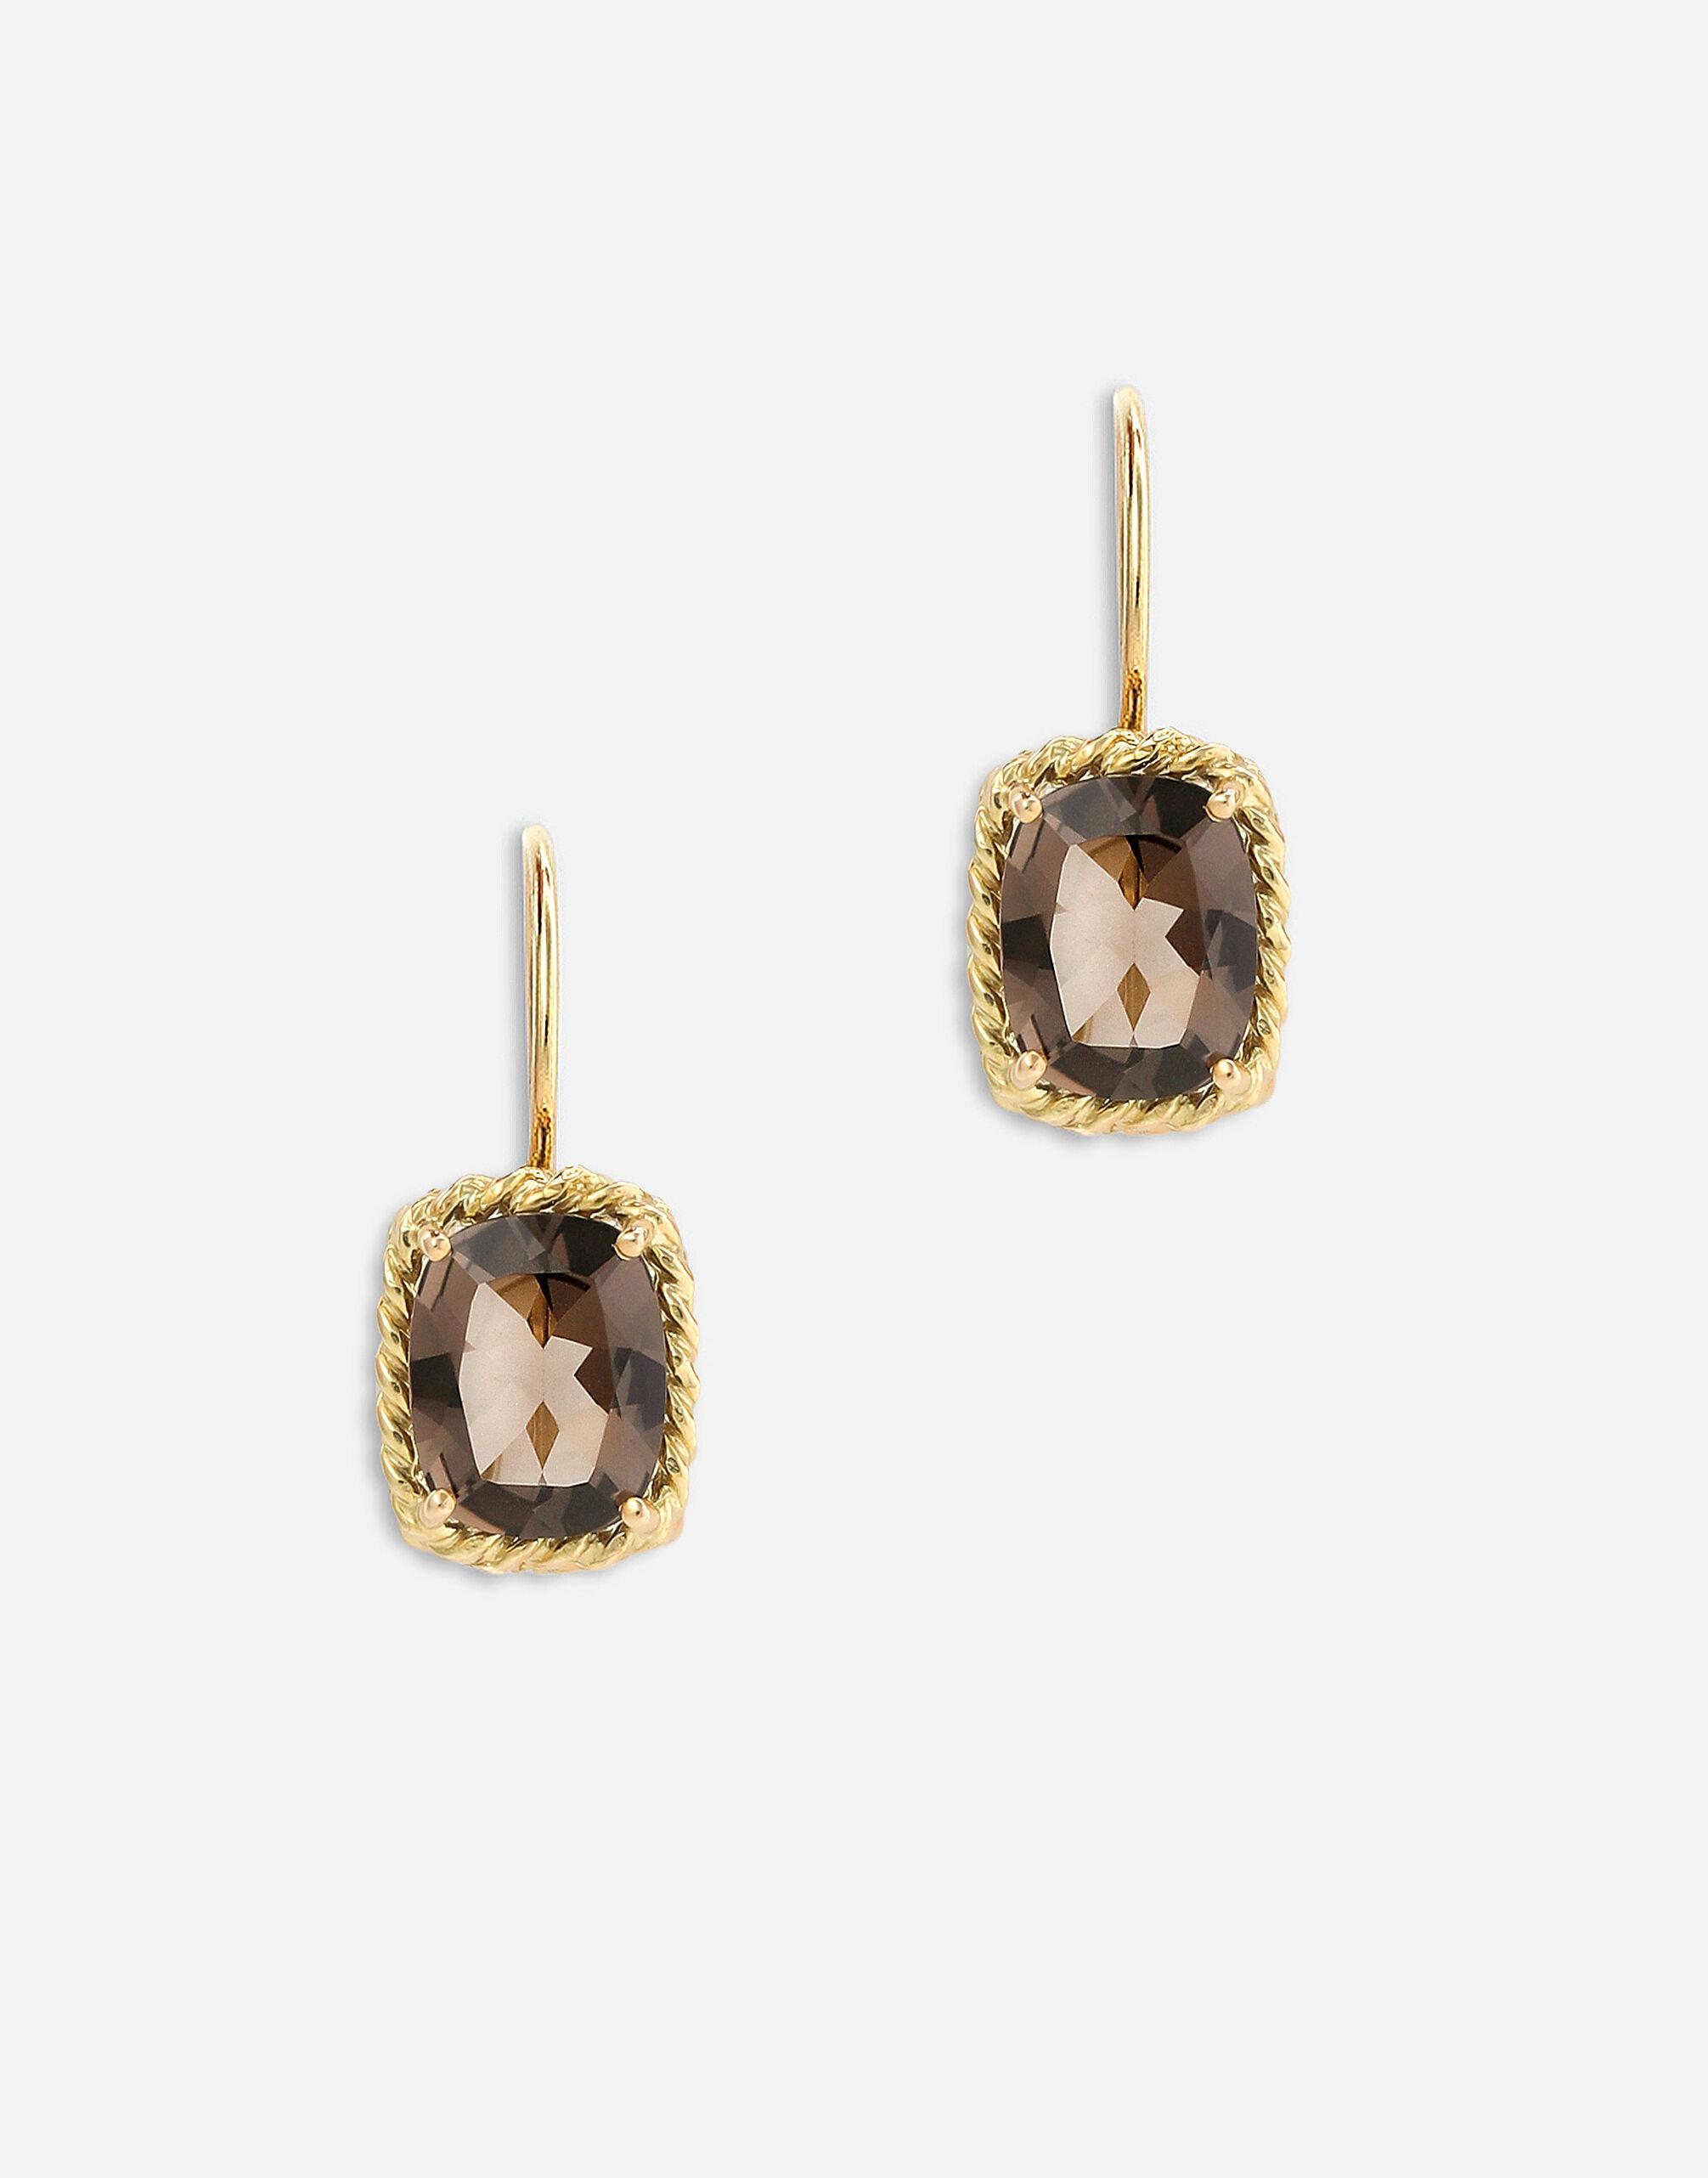 Anna earrings in yellow 18kt gold with smoky quartzes